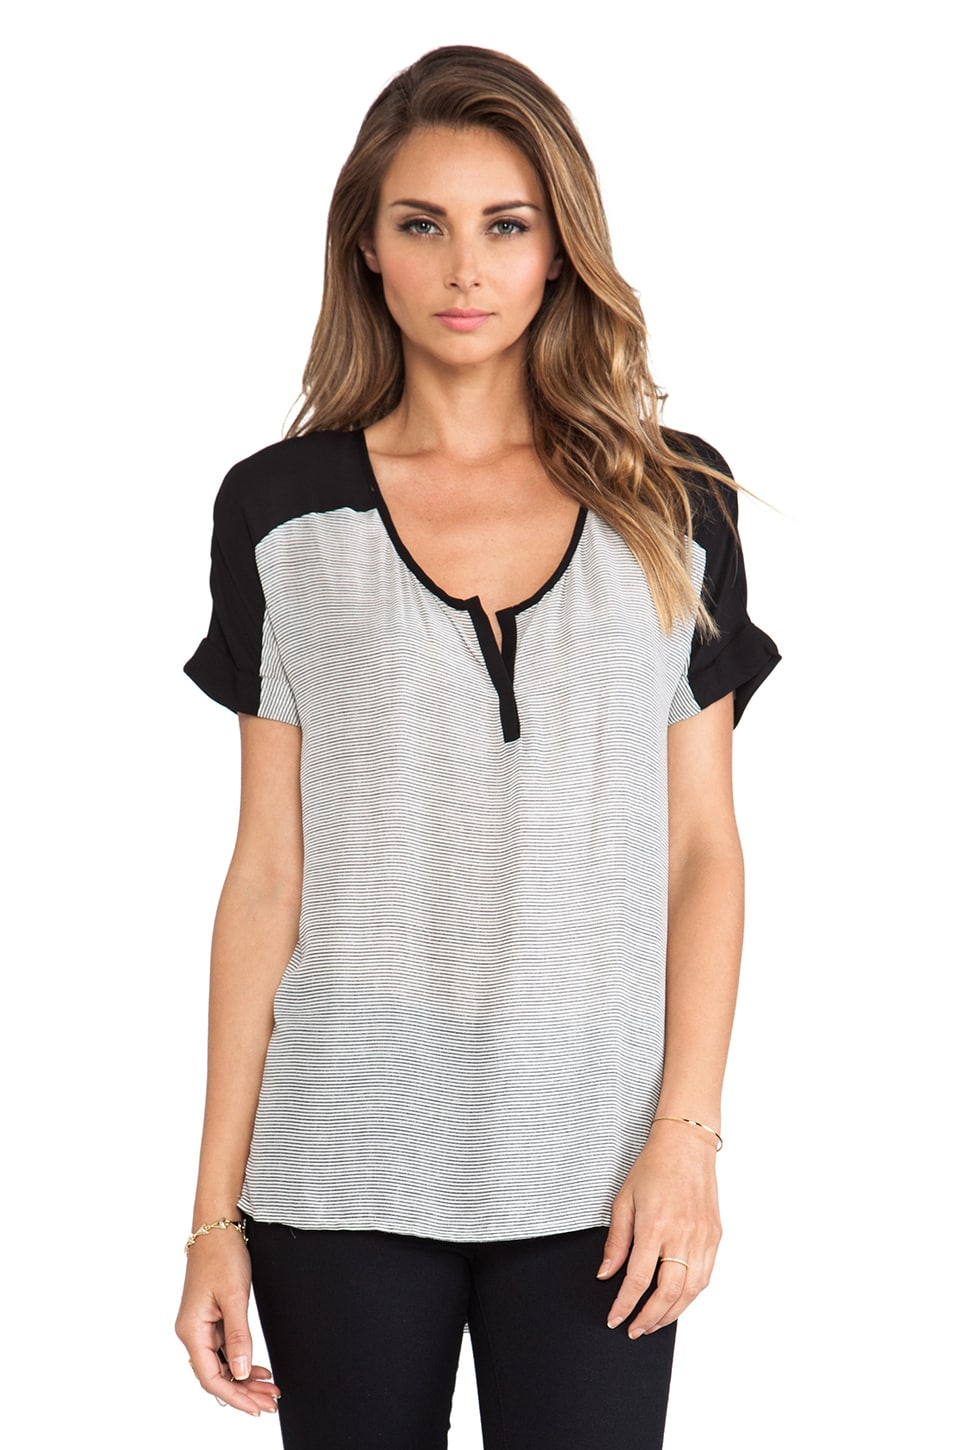 Bella Luxx Cuffed Henley Top in Hamptons Stripe & Black